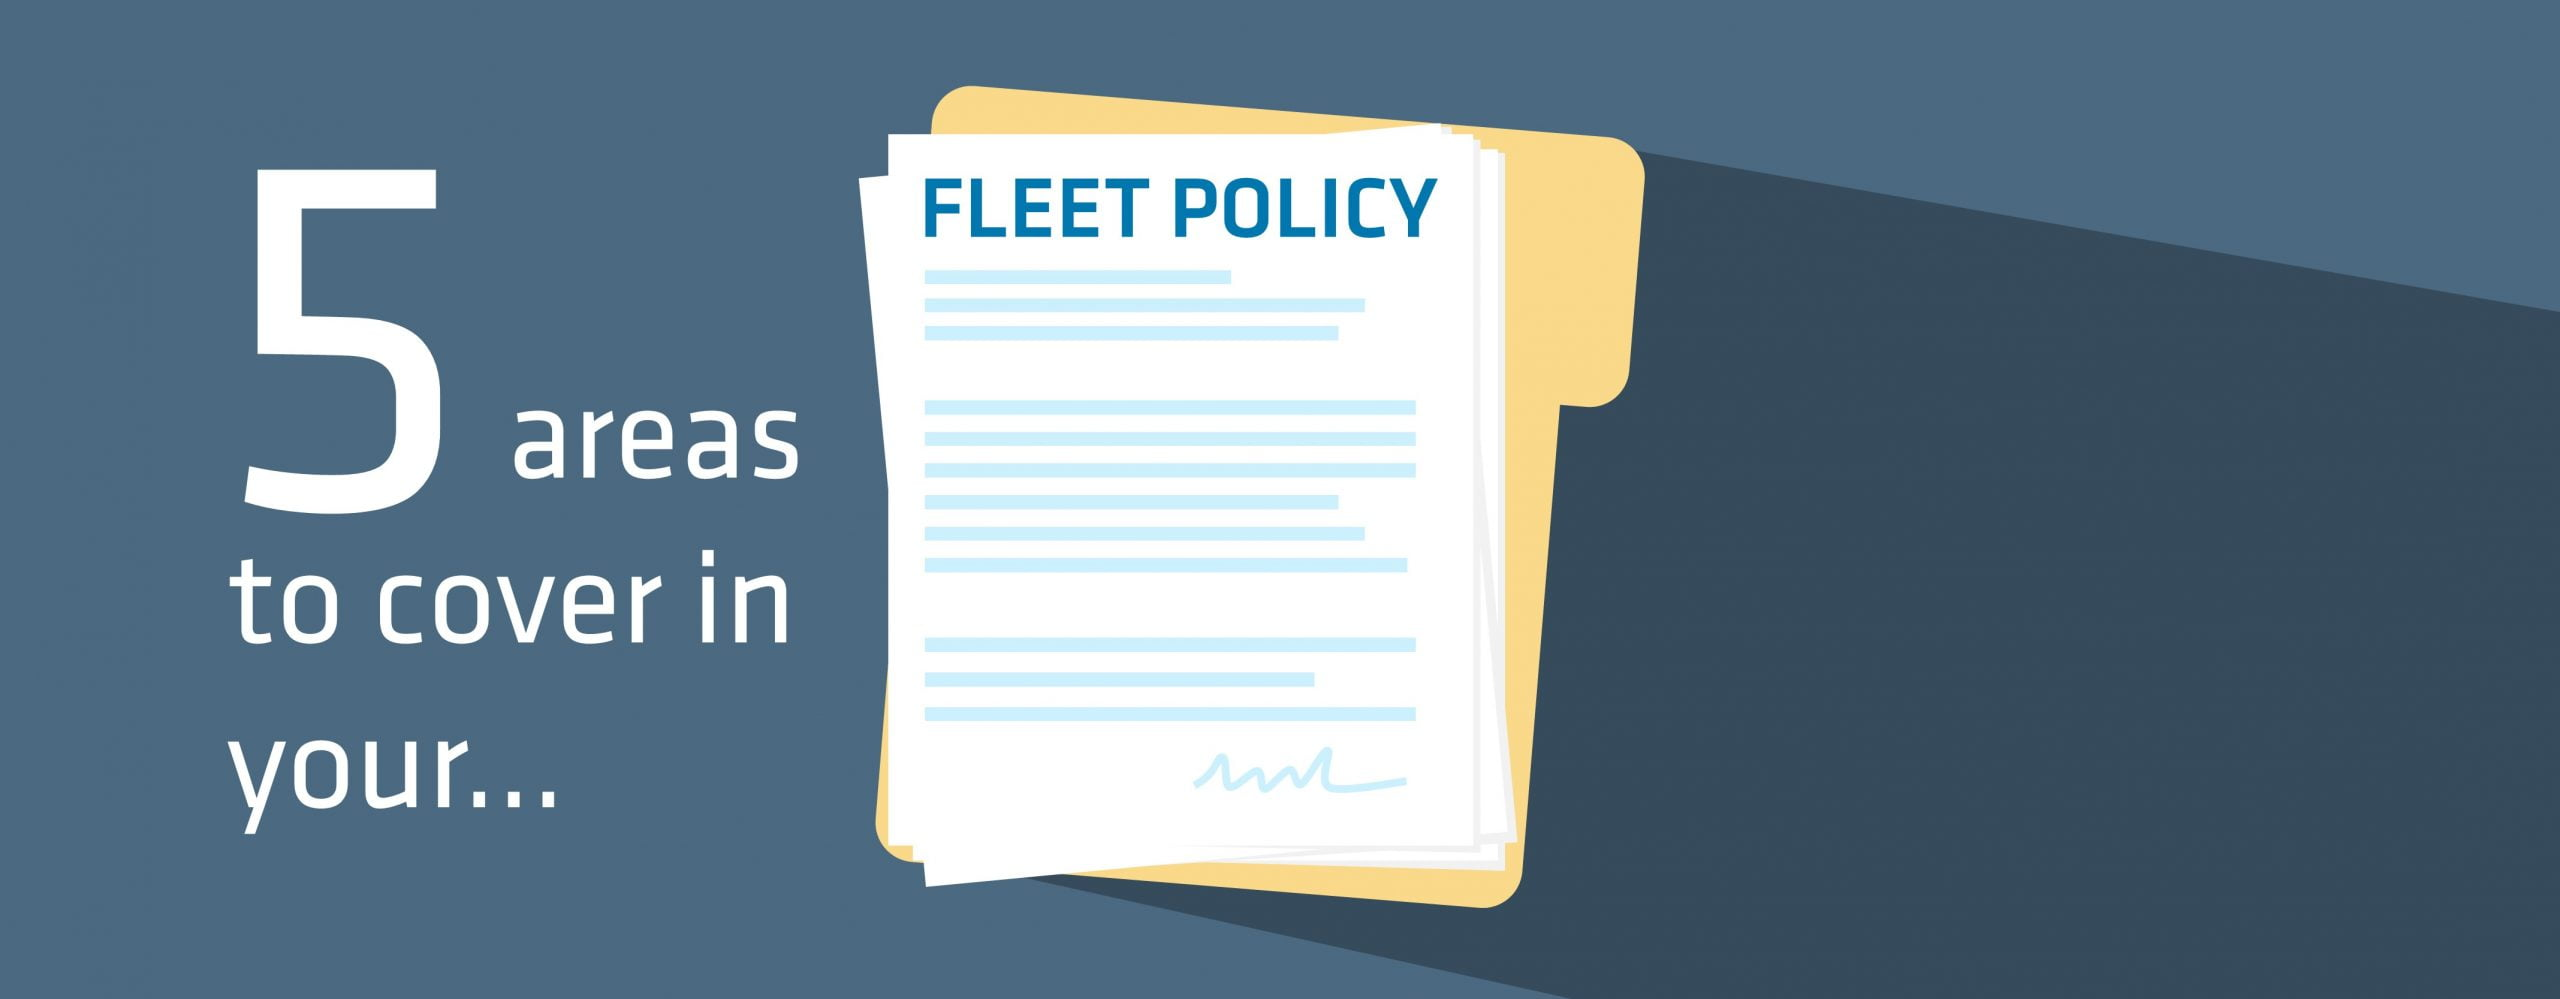 Five key areas to cover in your fleet policy